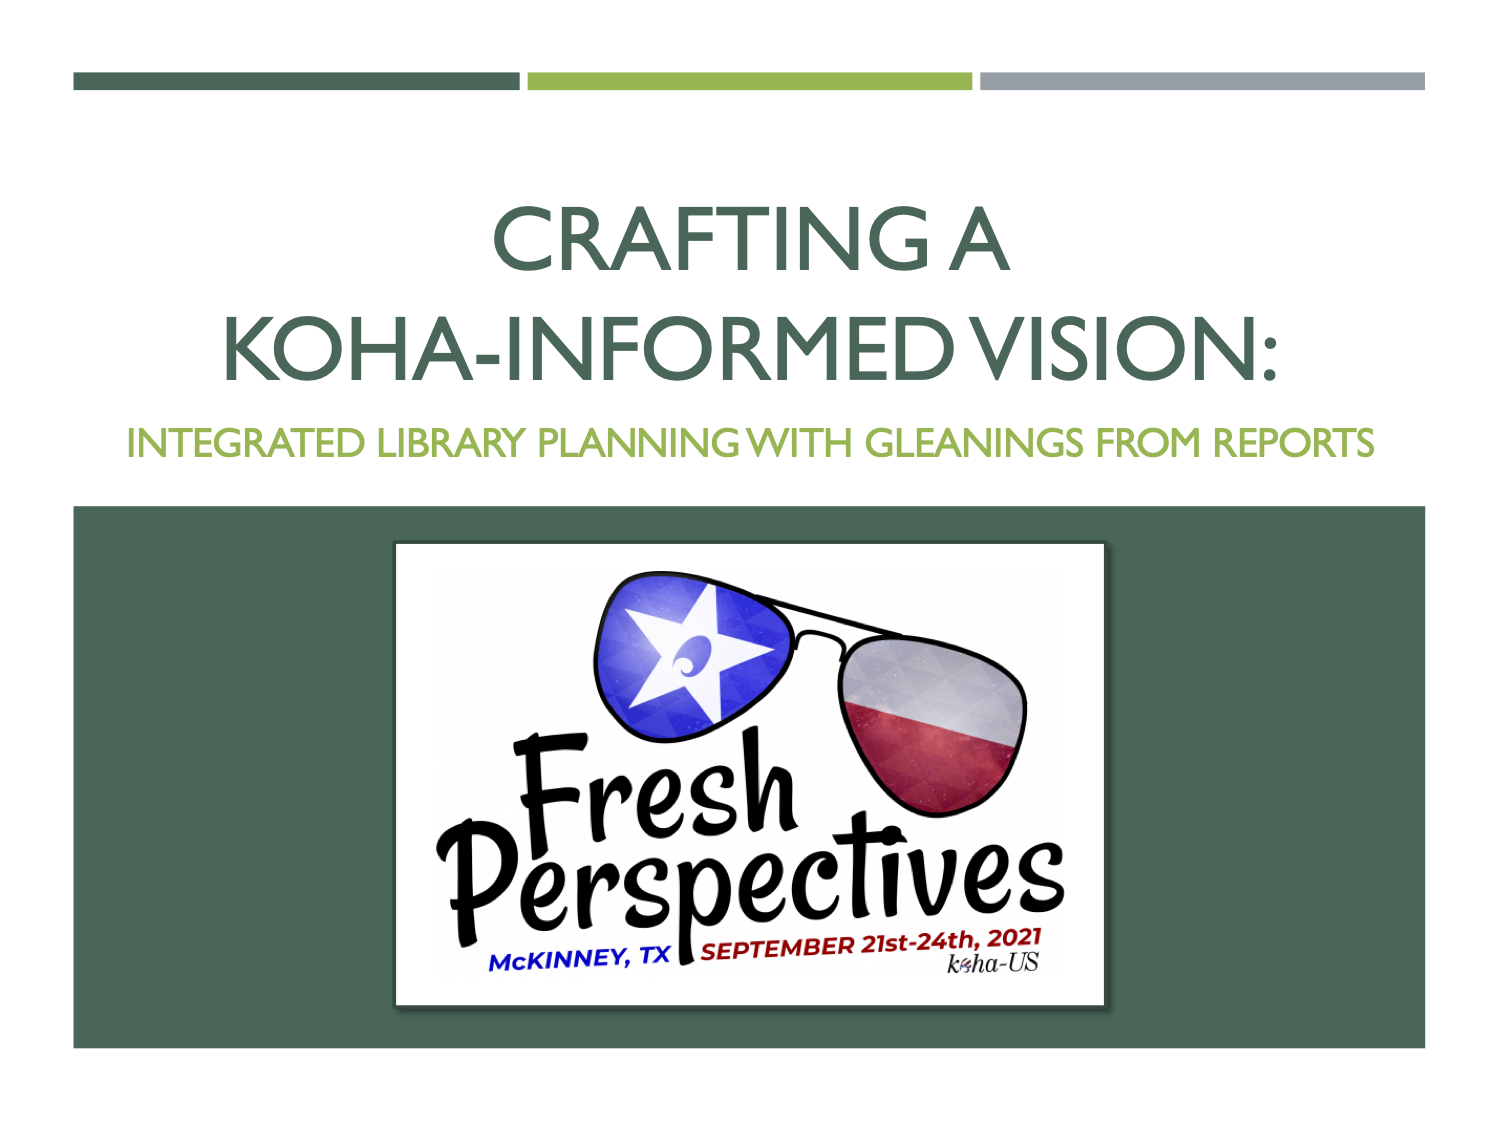 Crafting a Koha-Informed Vision: Integrated Library Planning with Gleanings from Reports